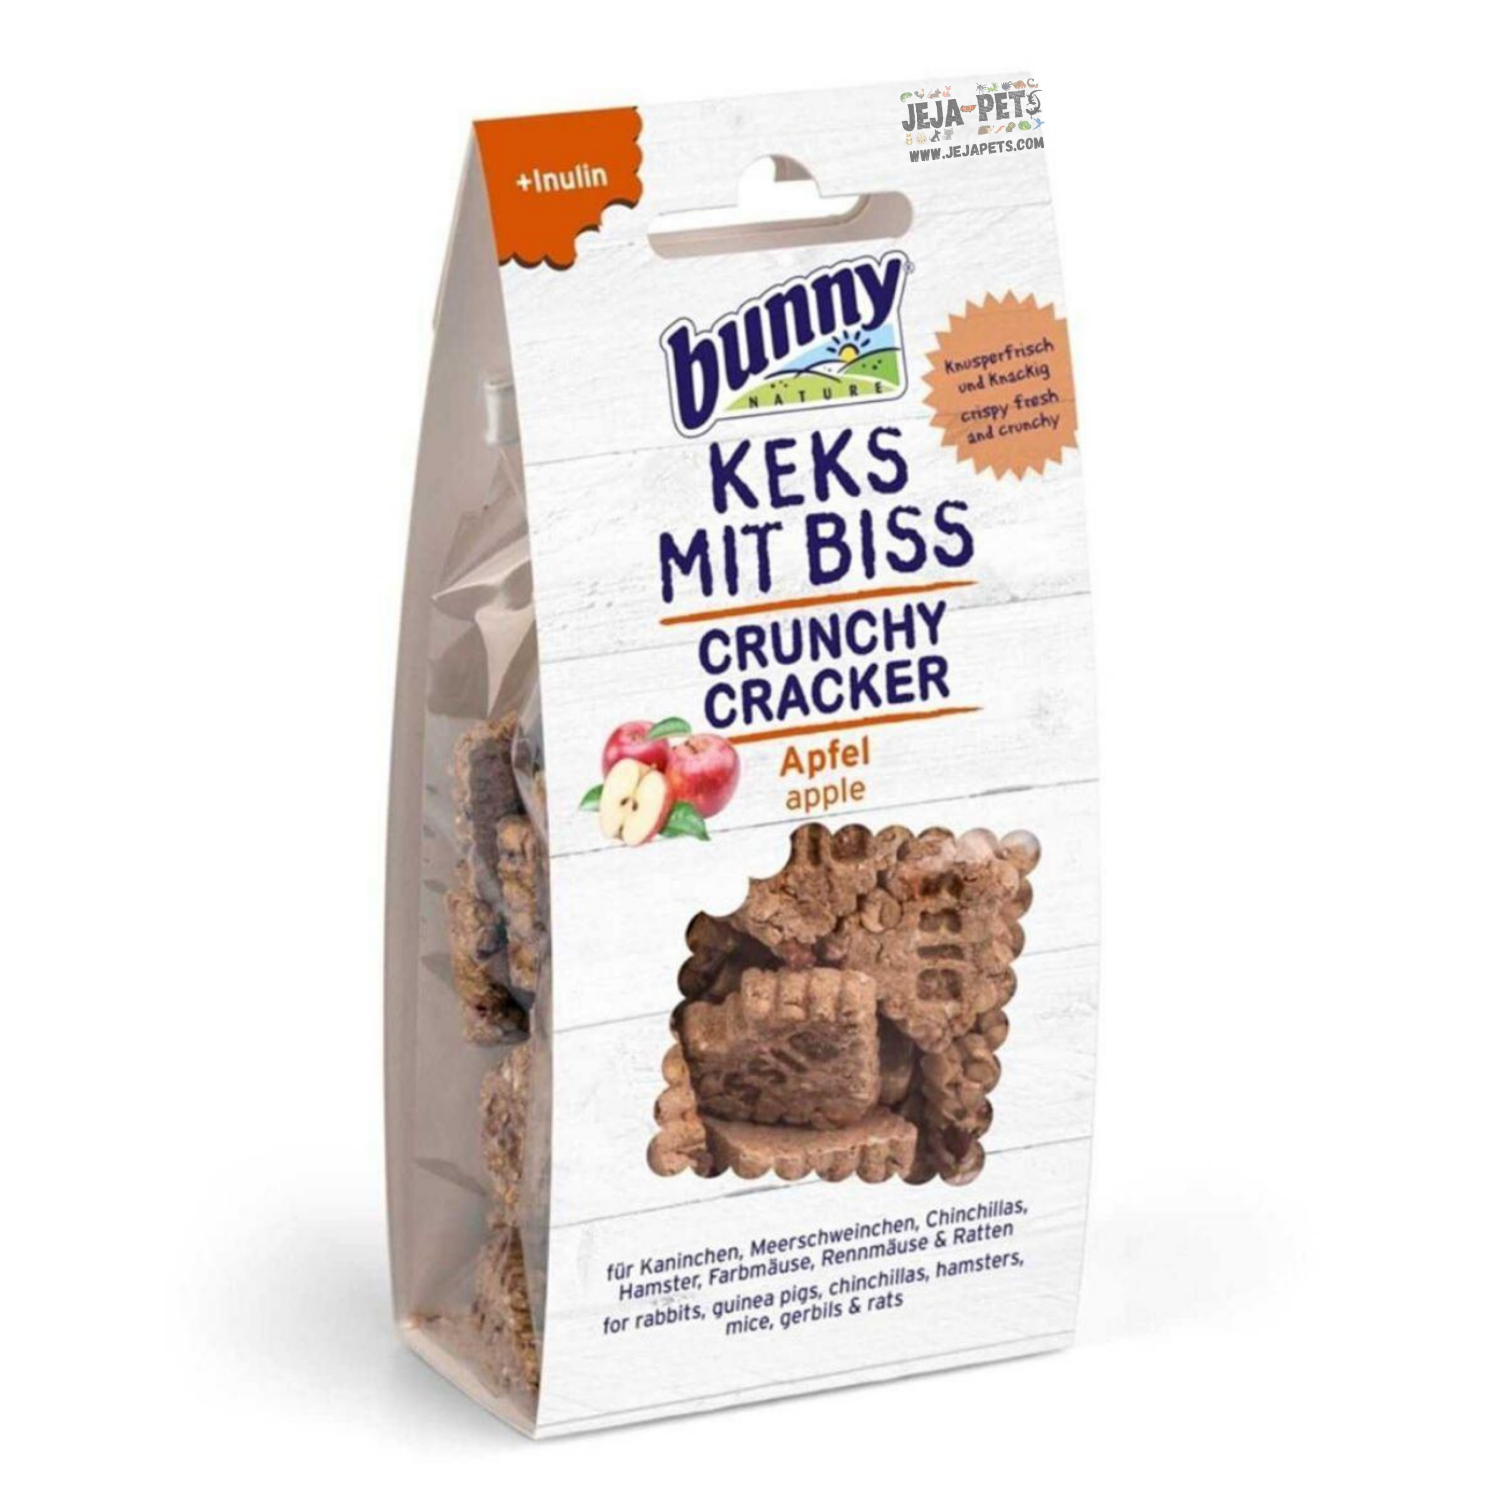 Bunny Nature Crunchy Cracker (Apples) - 50g